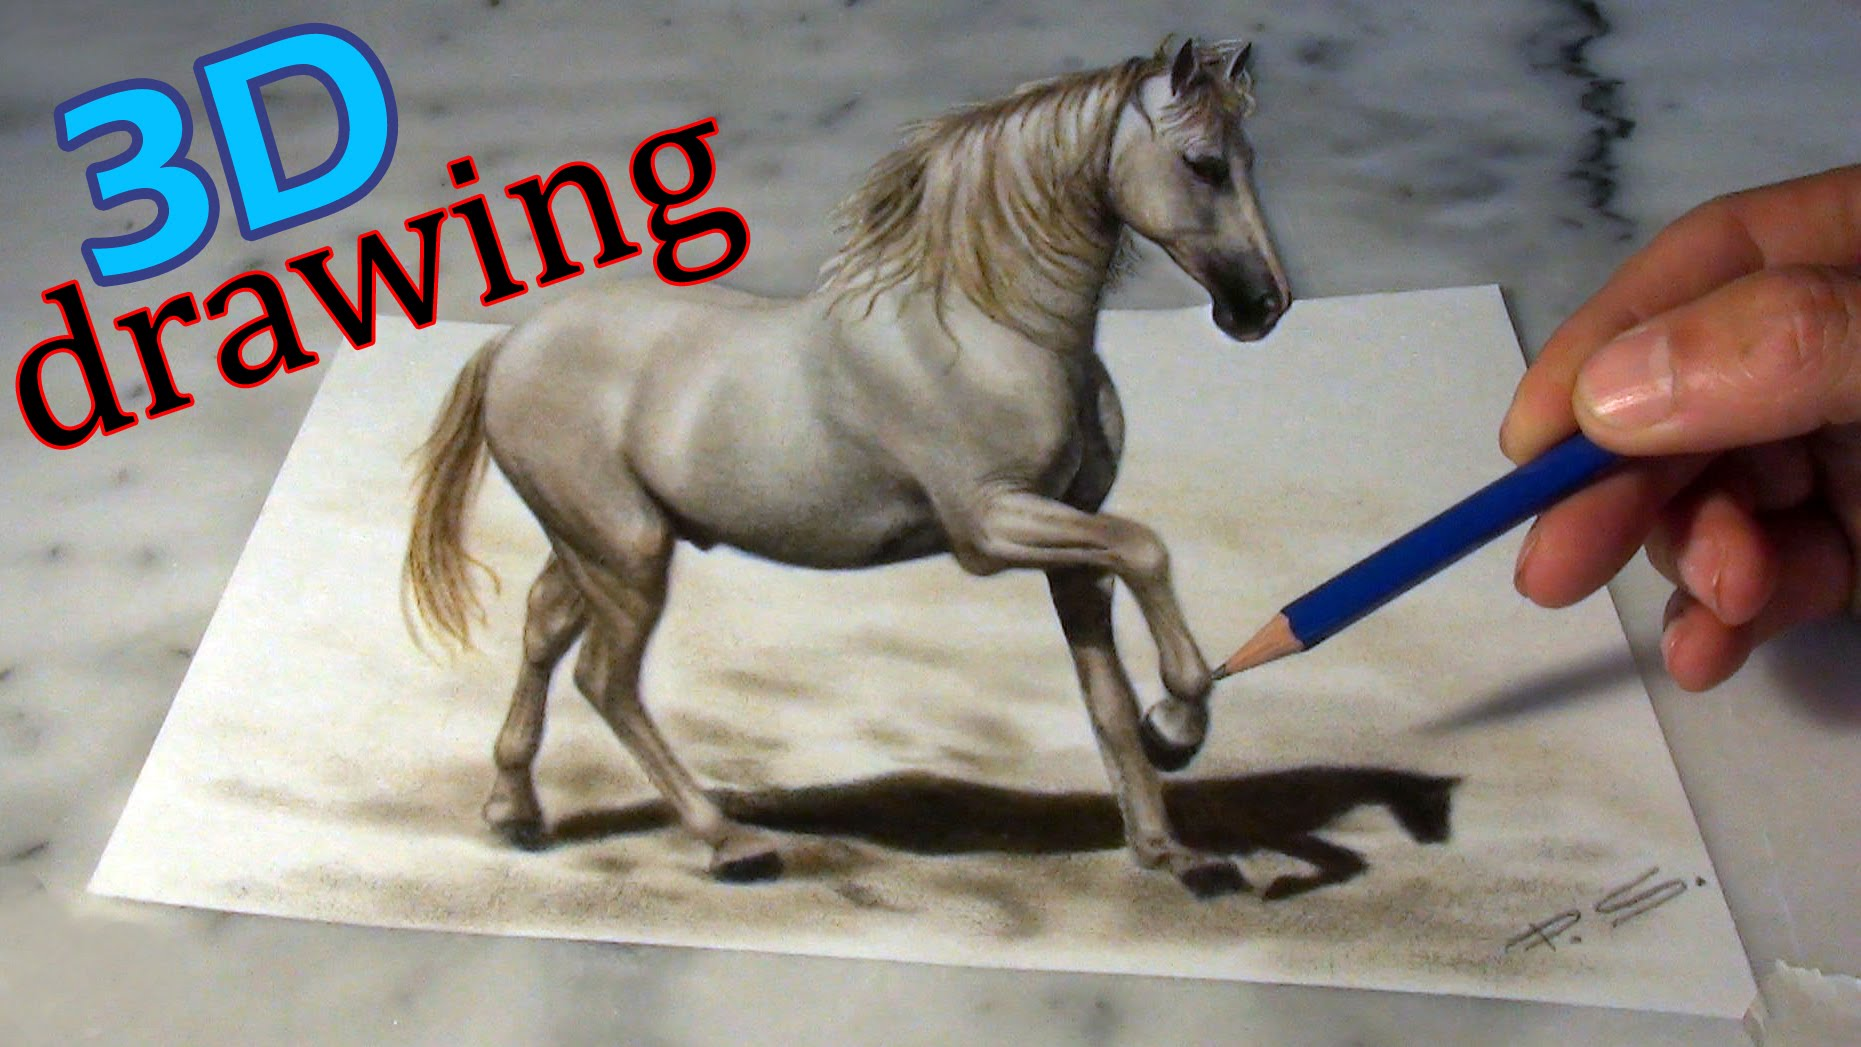 1861x1047 Speed Drawing Of A Horse In 3d ! Anamorphic Illusion